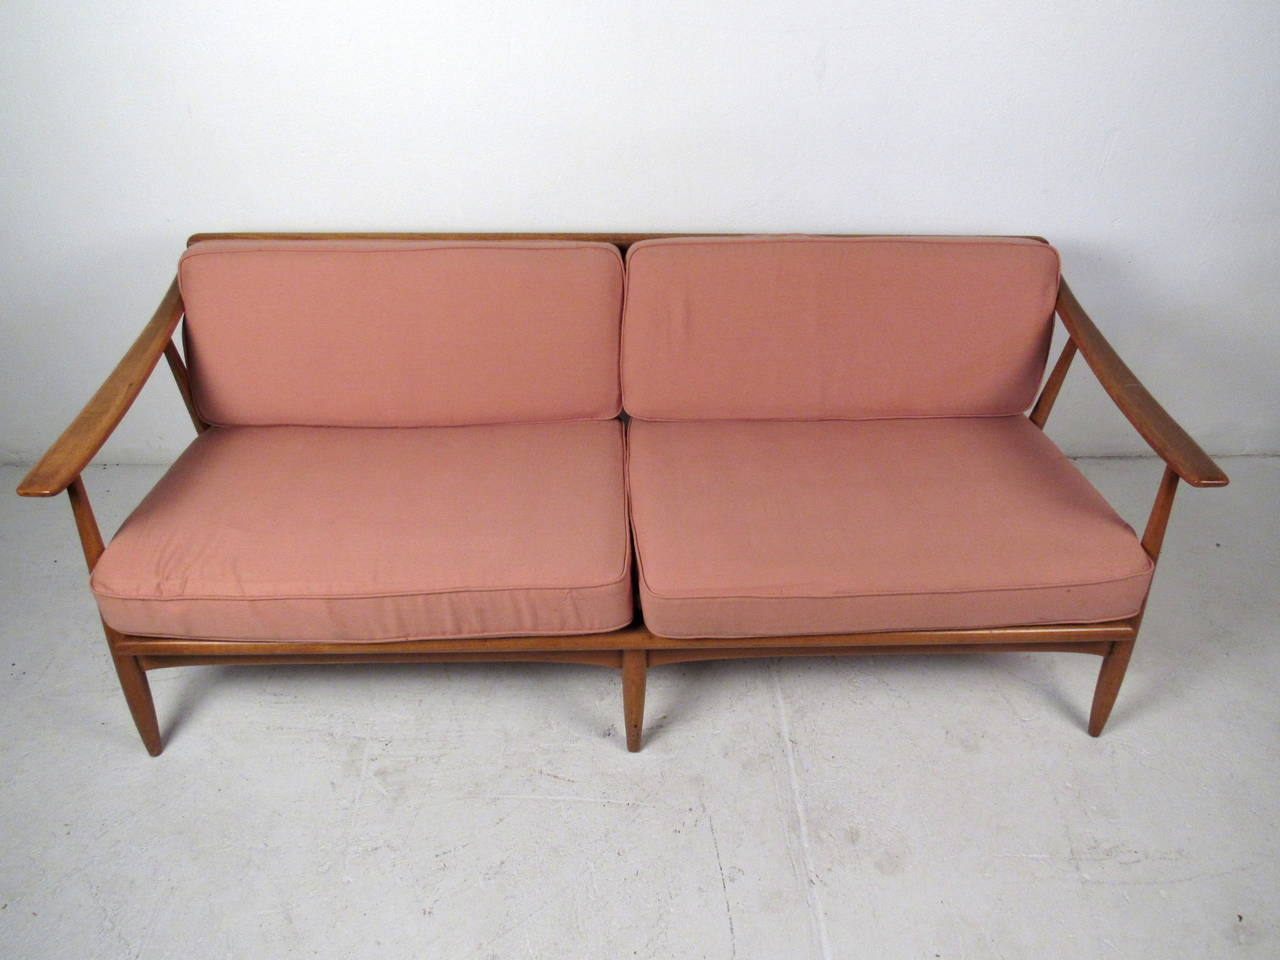 Exceptional Vintage Modern Walnut Sofa For Sale At 1stdibs